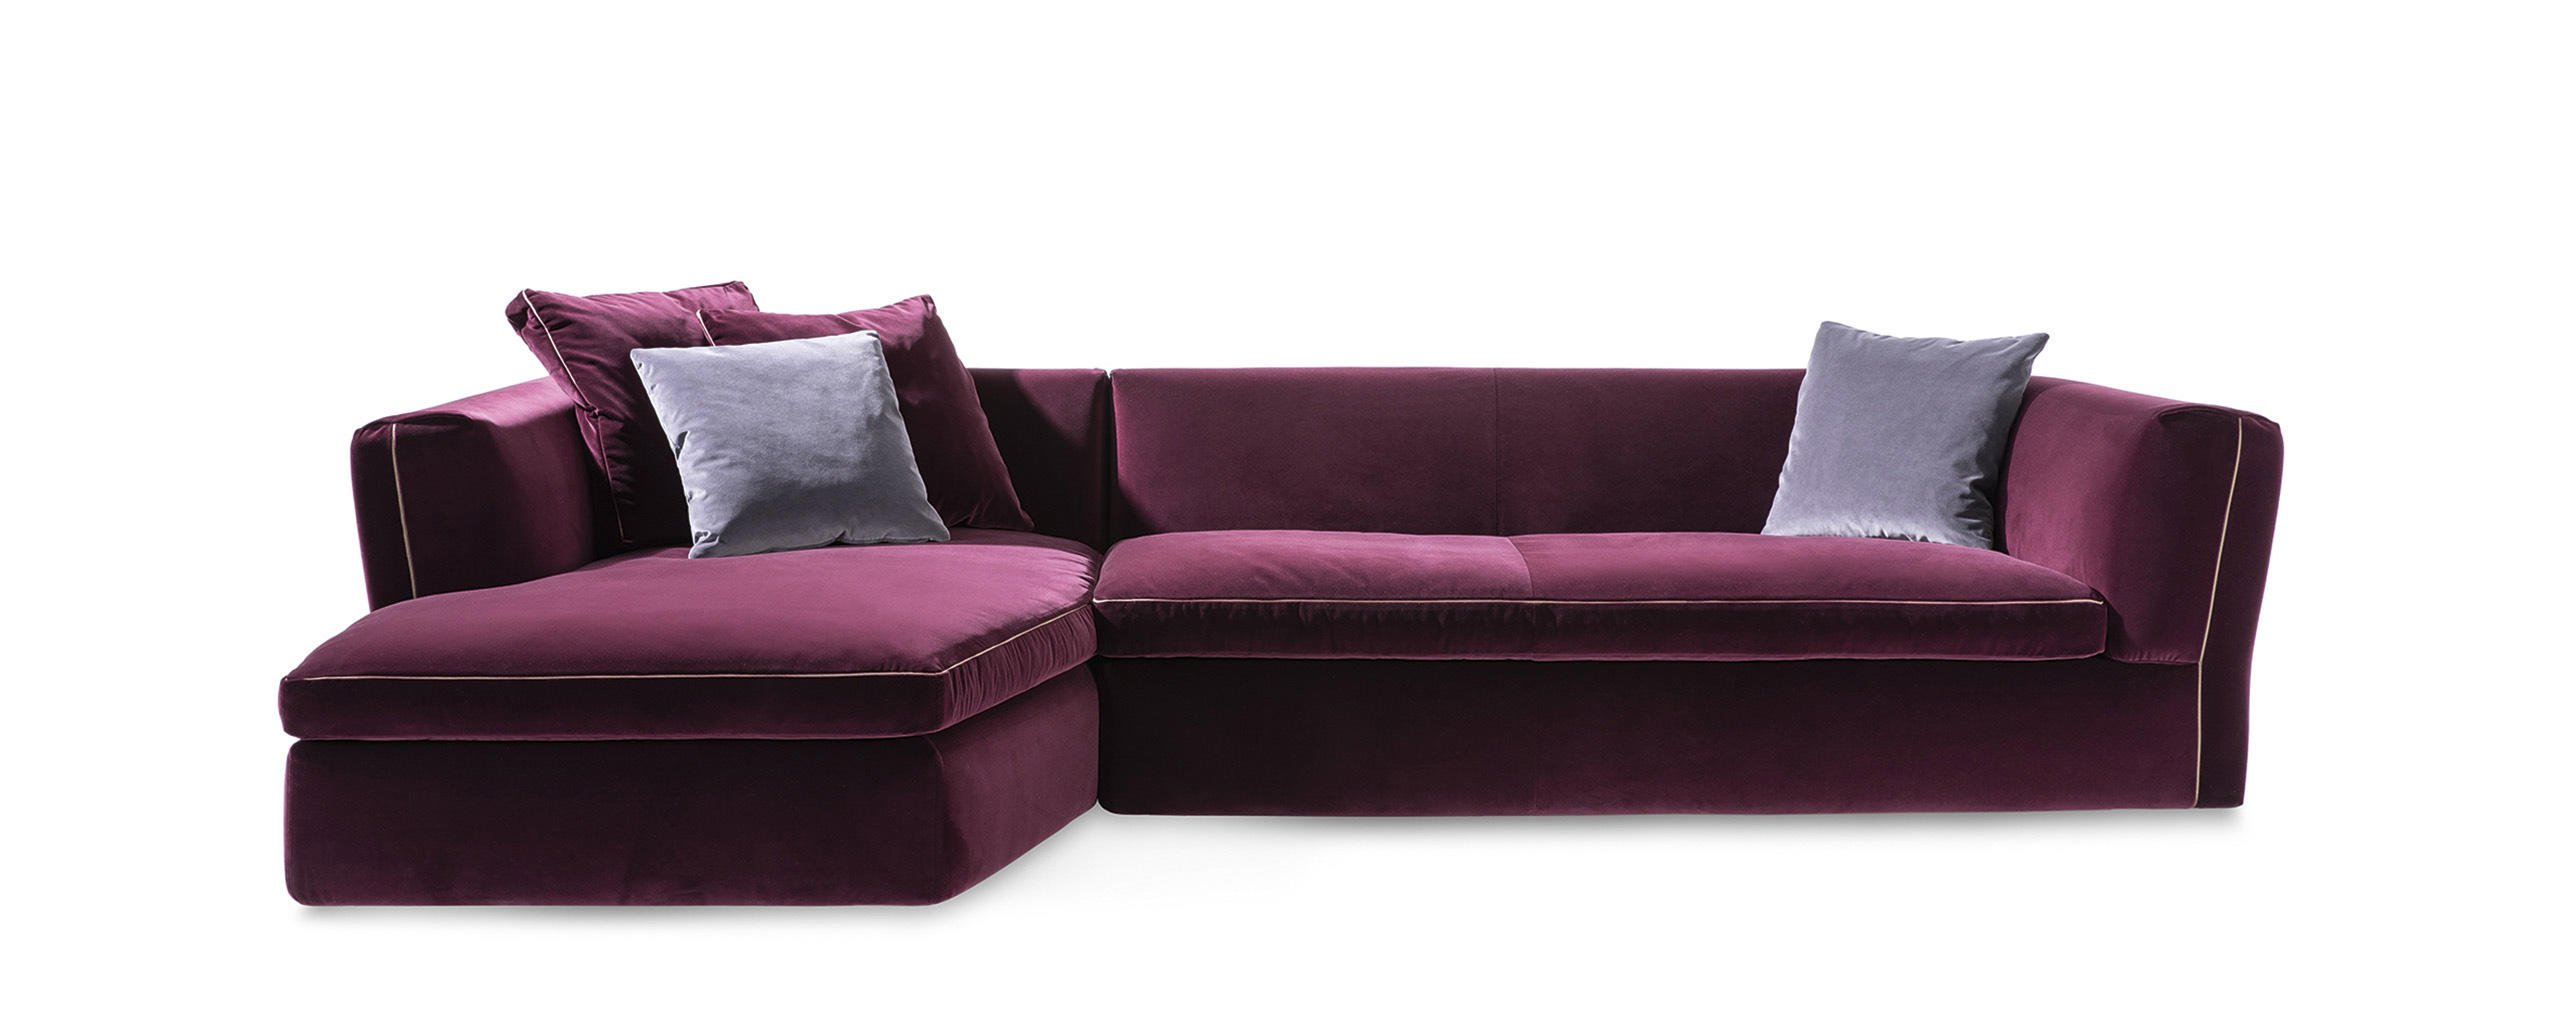 1_cassina_dress-up_sofa_system_rodolfo_dordoni